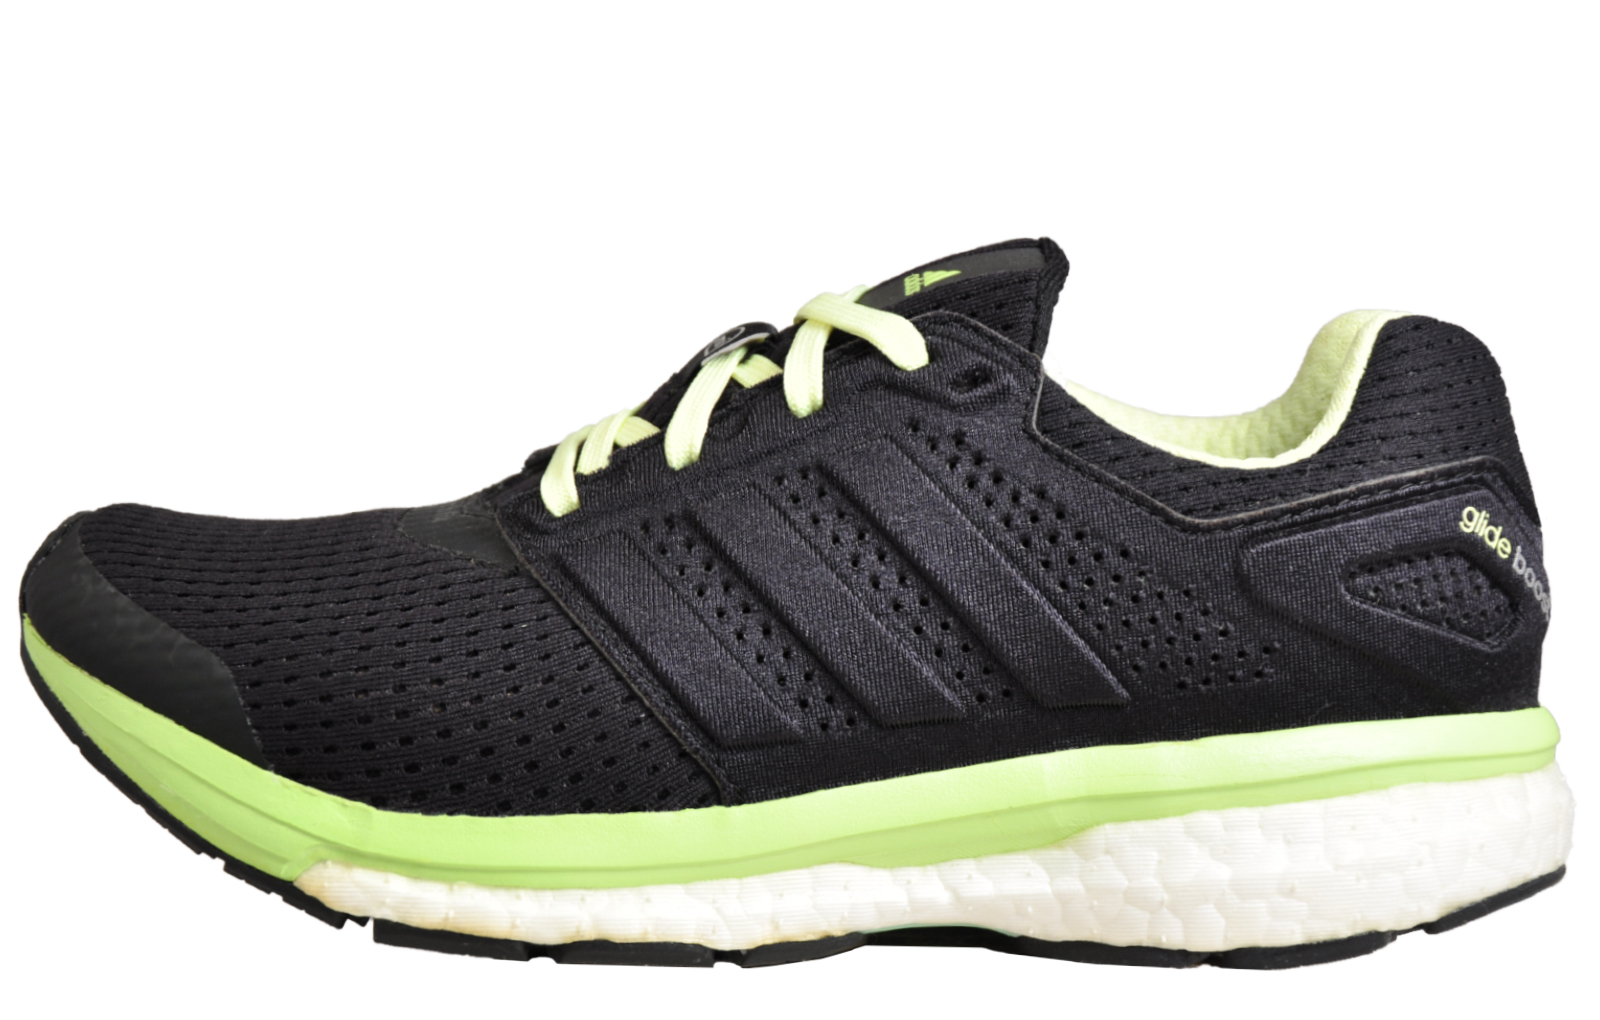 Adidas Supernova Glide Boost 7 Womens - AD176073